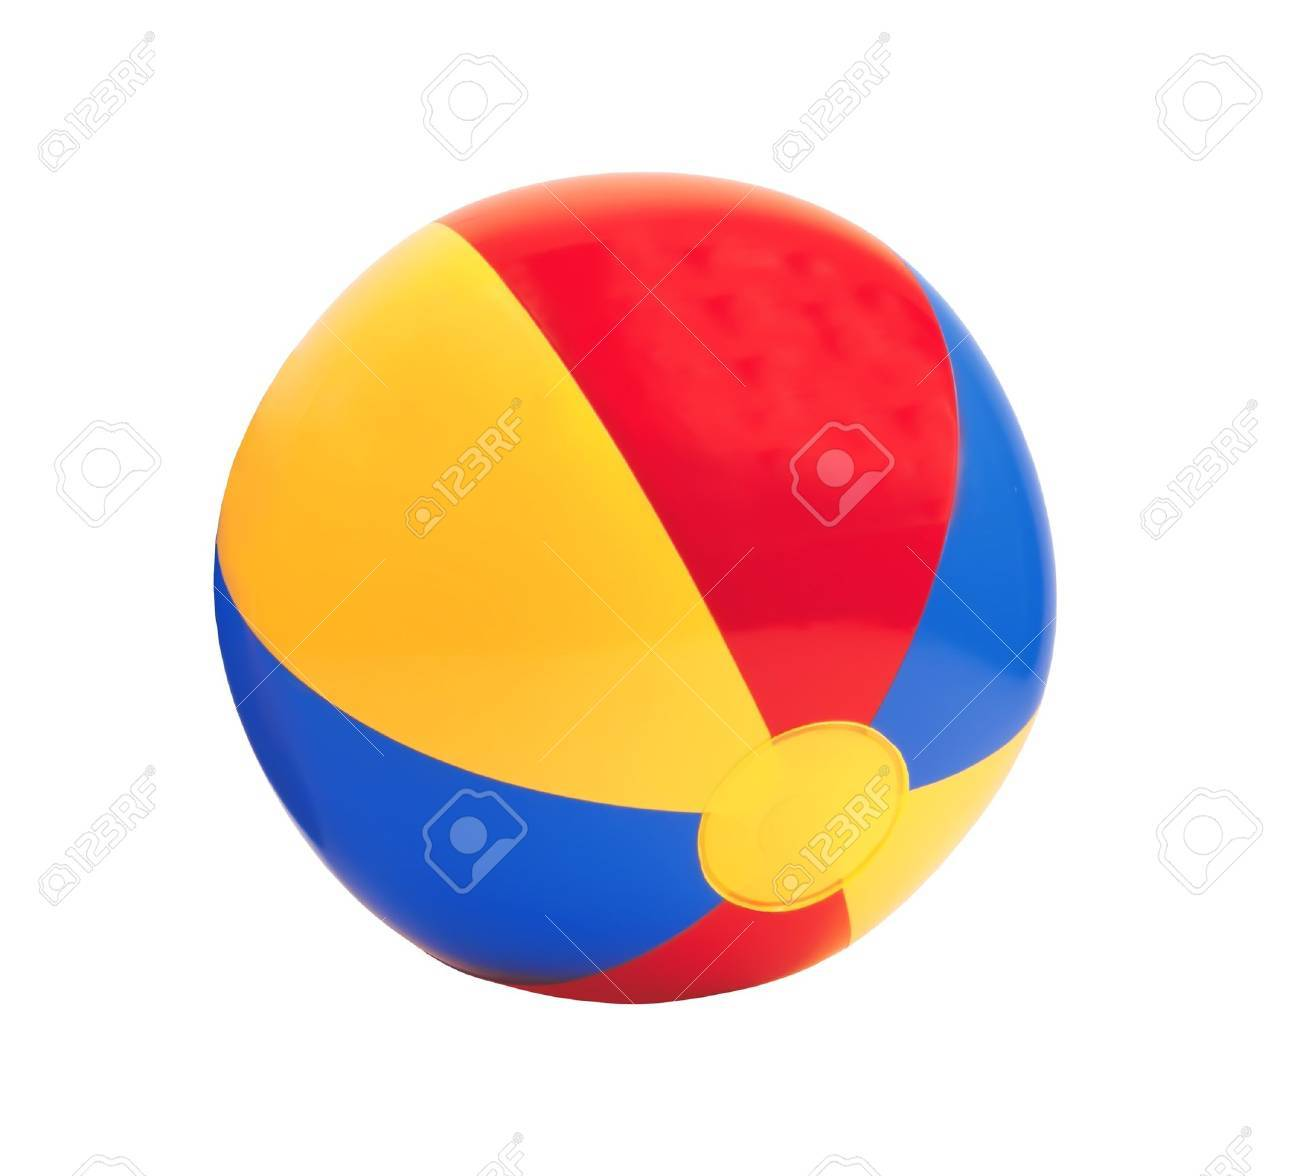 bright inflatable ball isolated on white background Stock Photo - 14901114